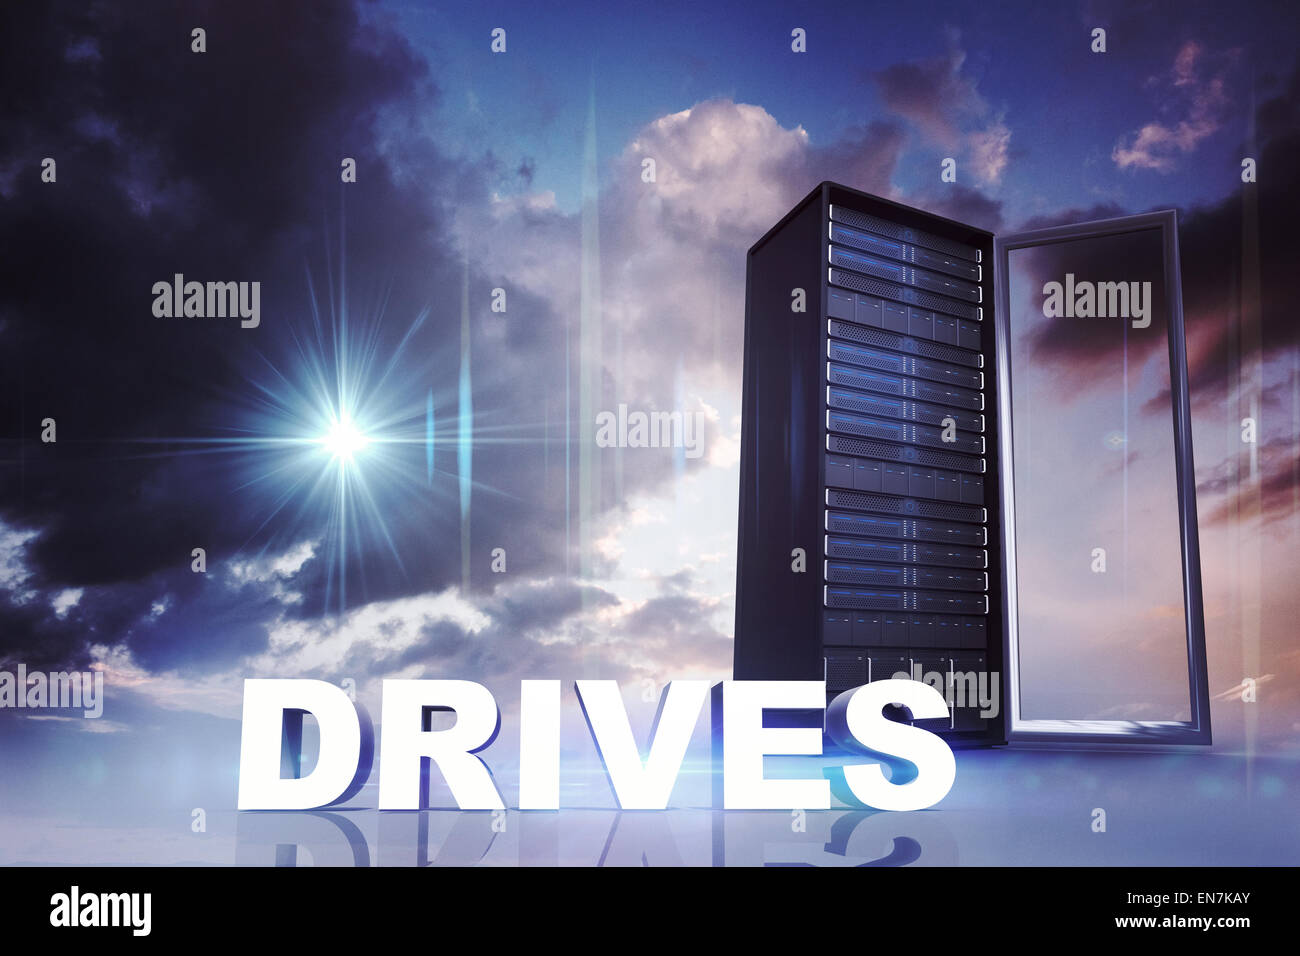 Composite image of drives - Stock Image